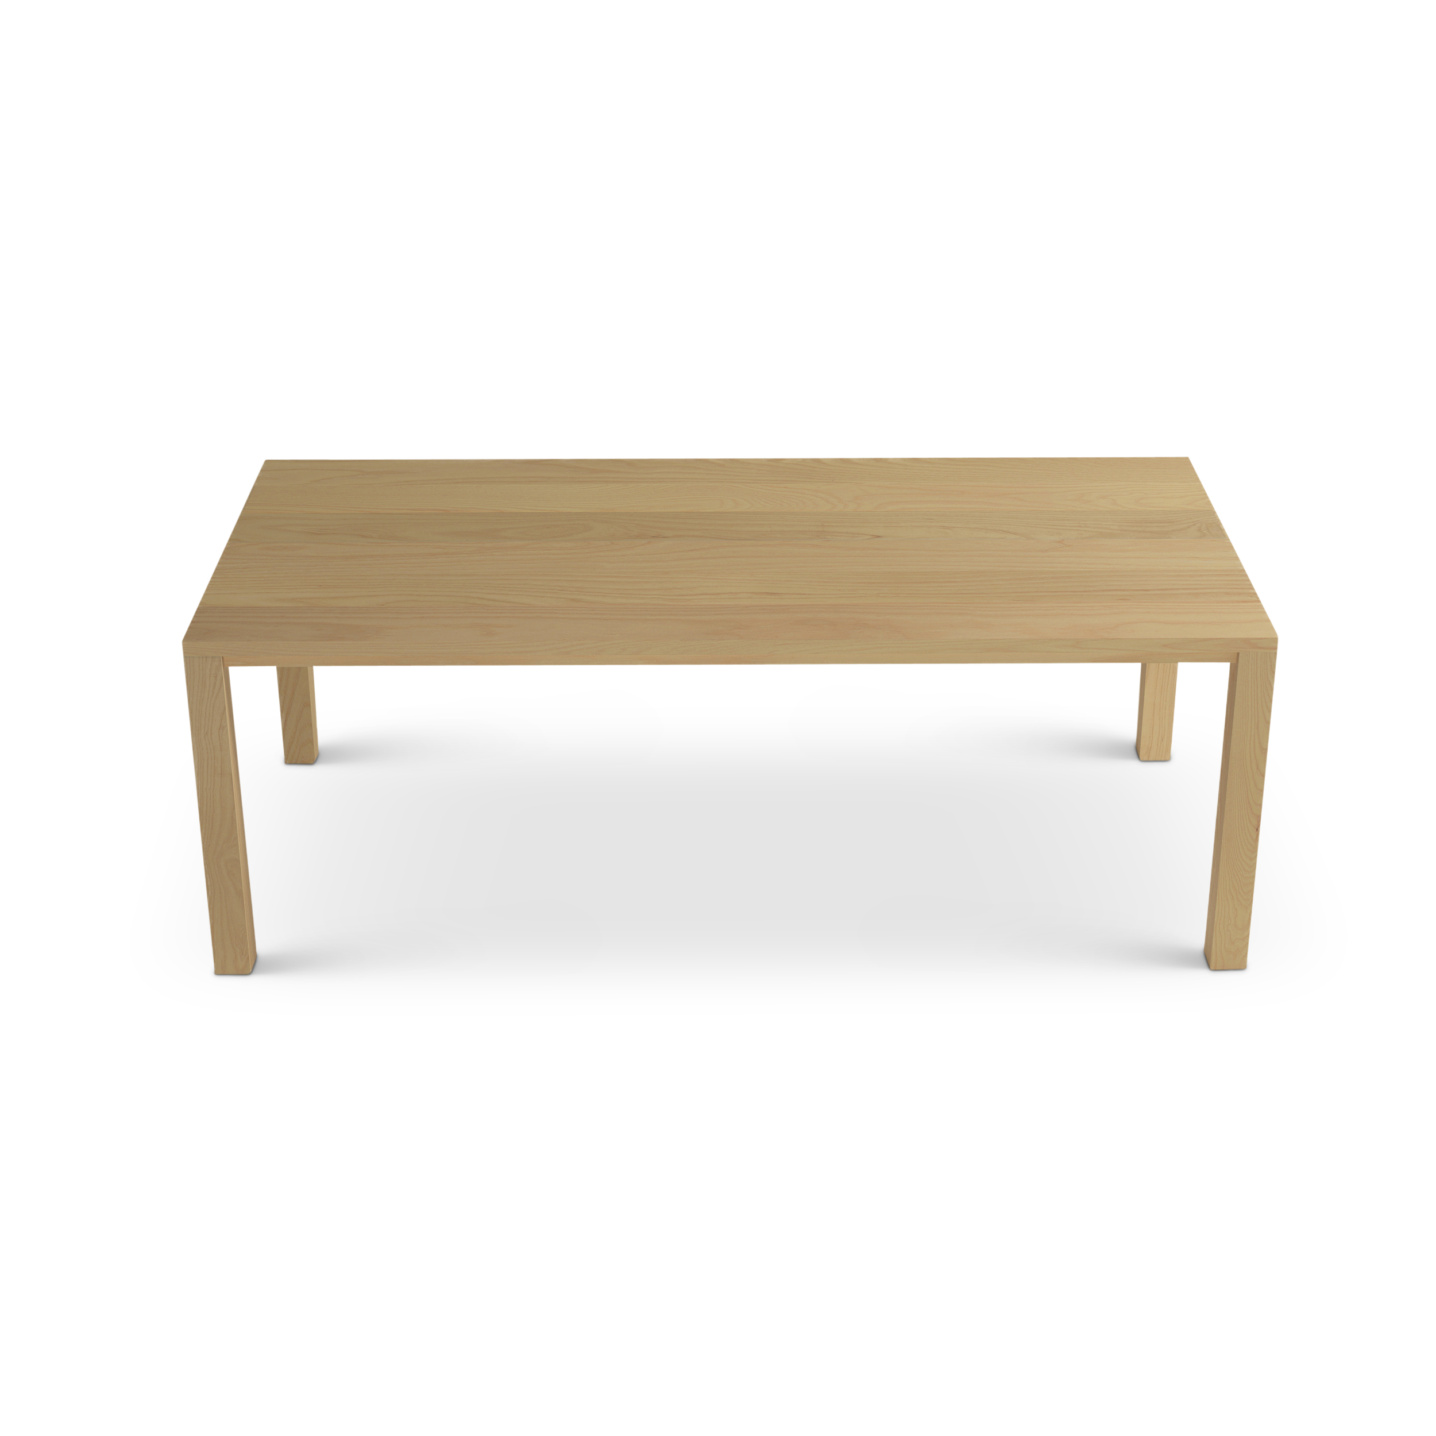 Ash planked solid wood table